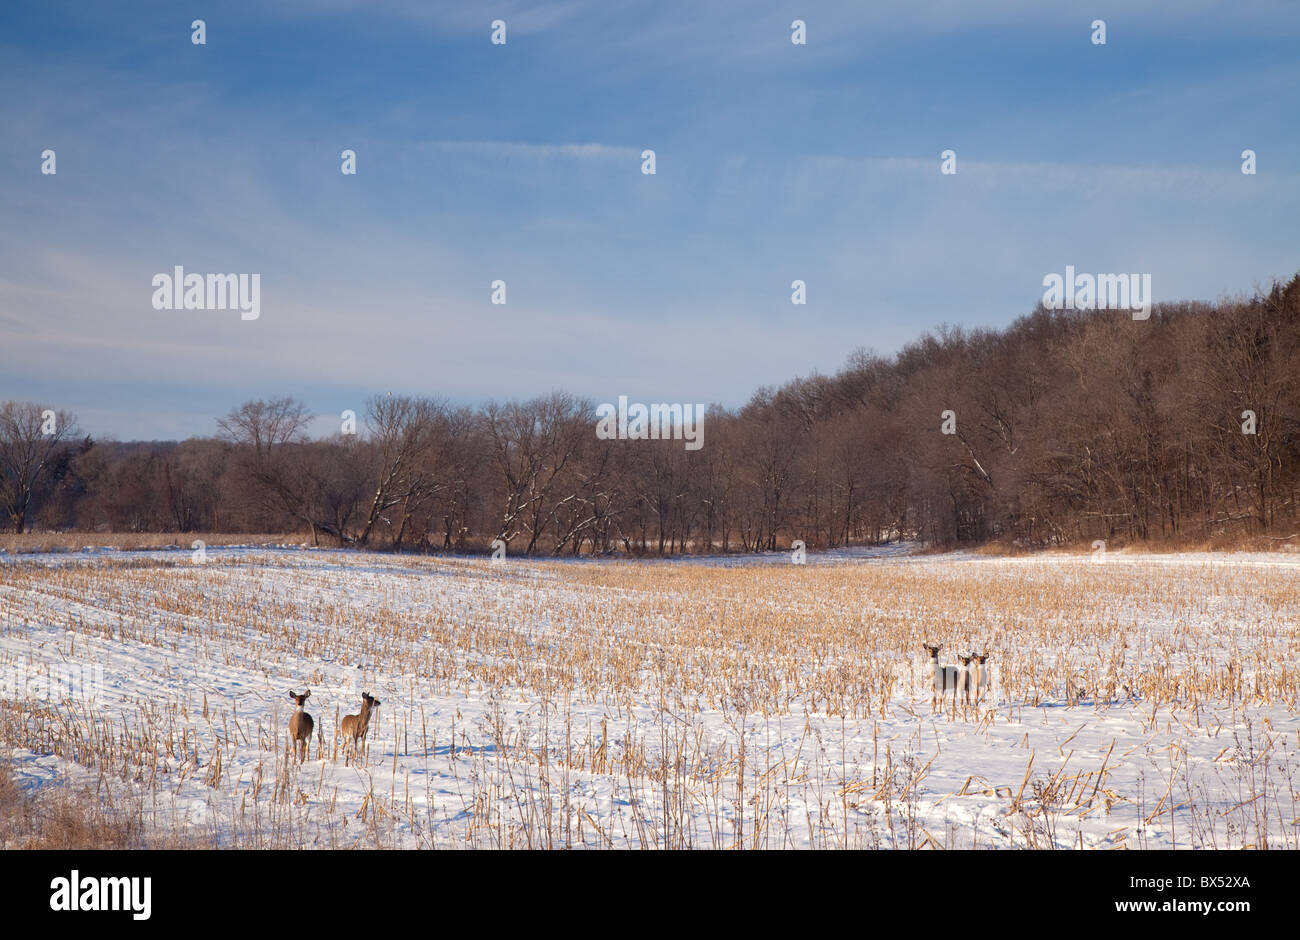 white-tailed deer, along the River Bluffs Scenic Byway, Fayette County, Iowa - Stock Image